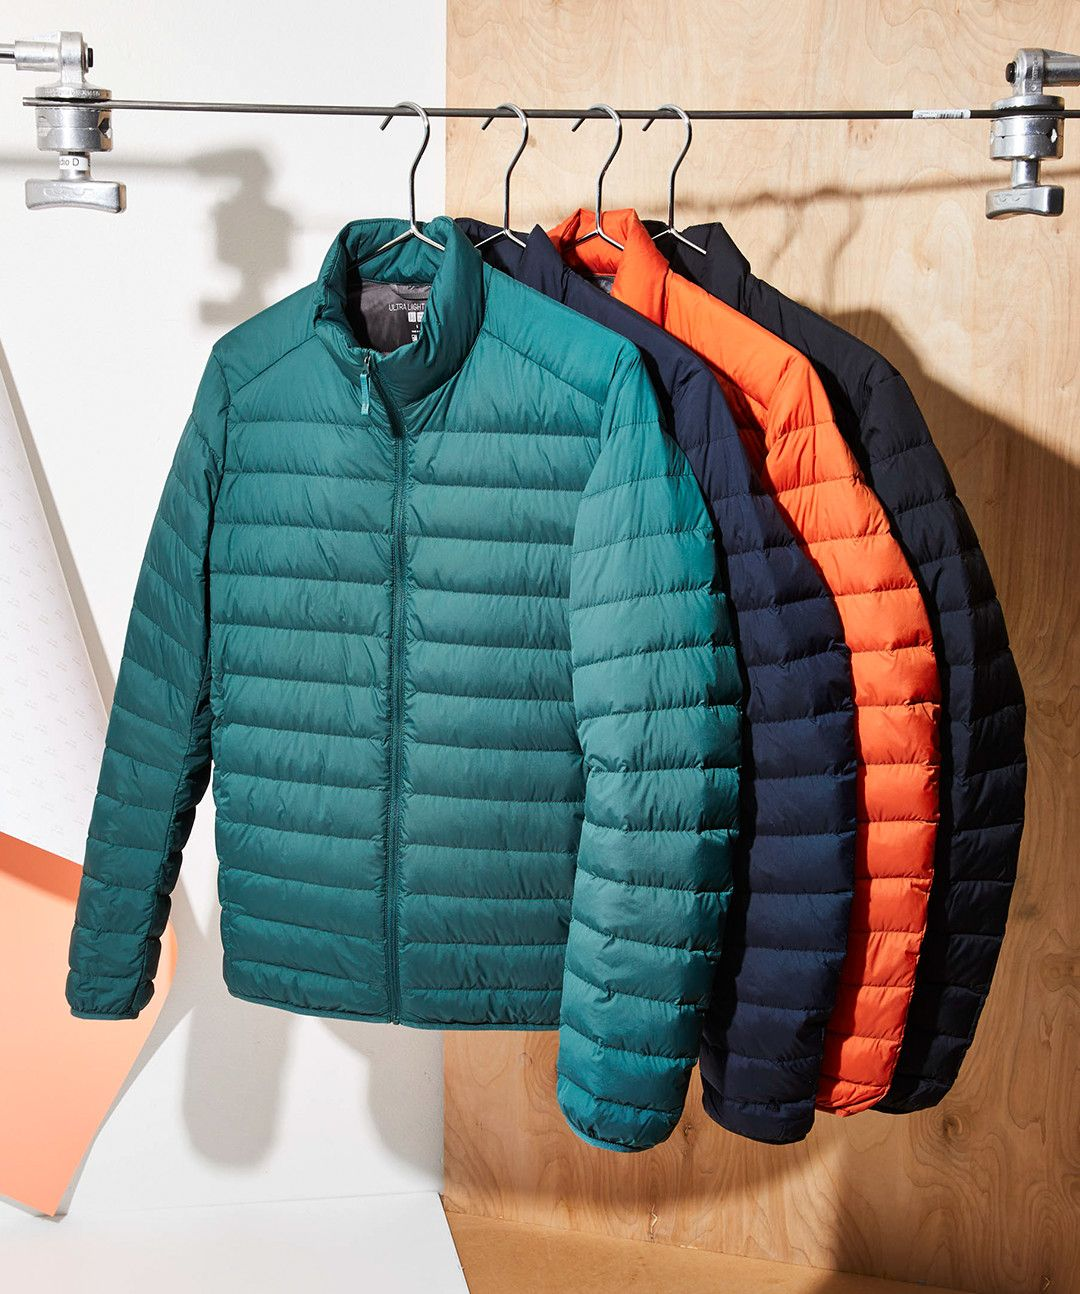 Uniqlo's Warm, Layerable, Ultra Light Down Jacket Will Keep You Cozy Through the End of Winter